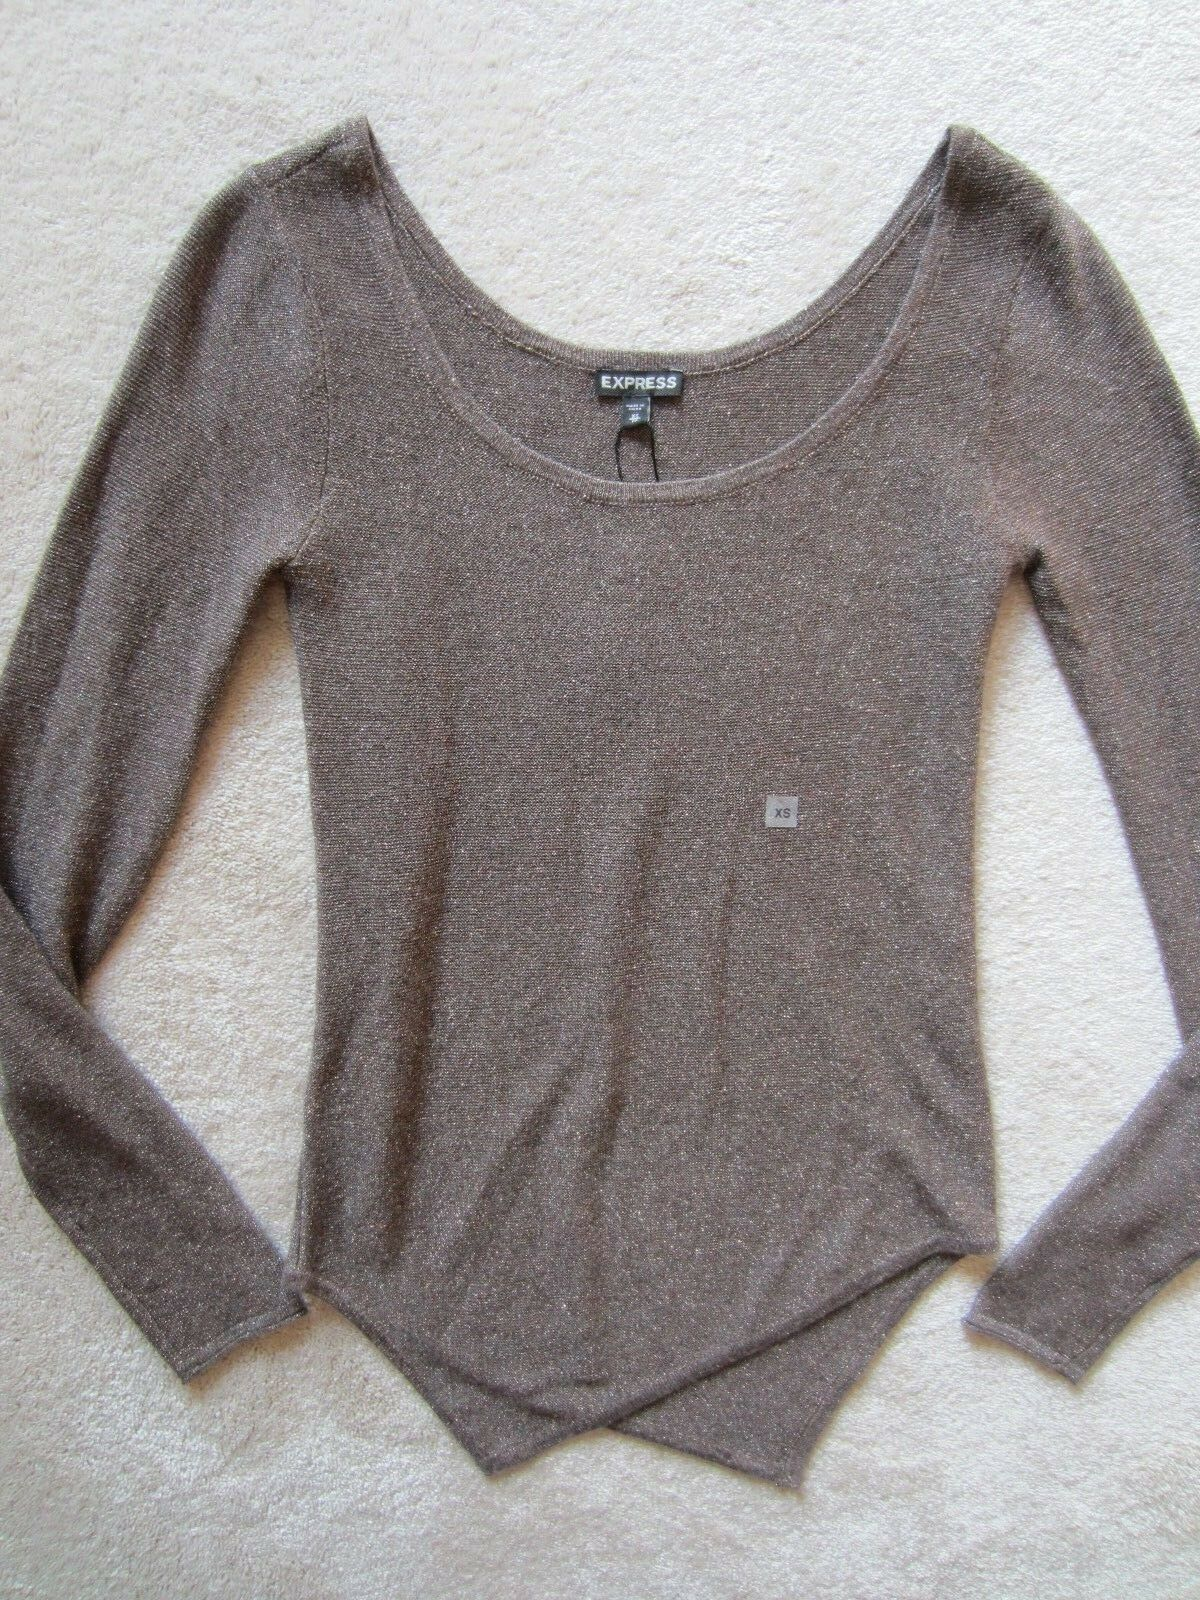 WOMENS EXPRESS ASSYMETRICAL BROWN METALLIC SPARKLE SWEATER KNIT TOP XSMALL XS